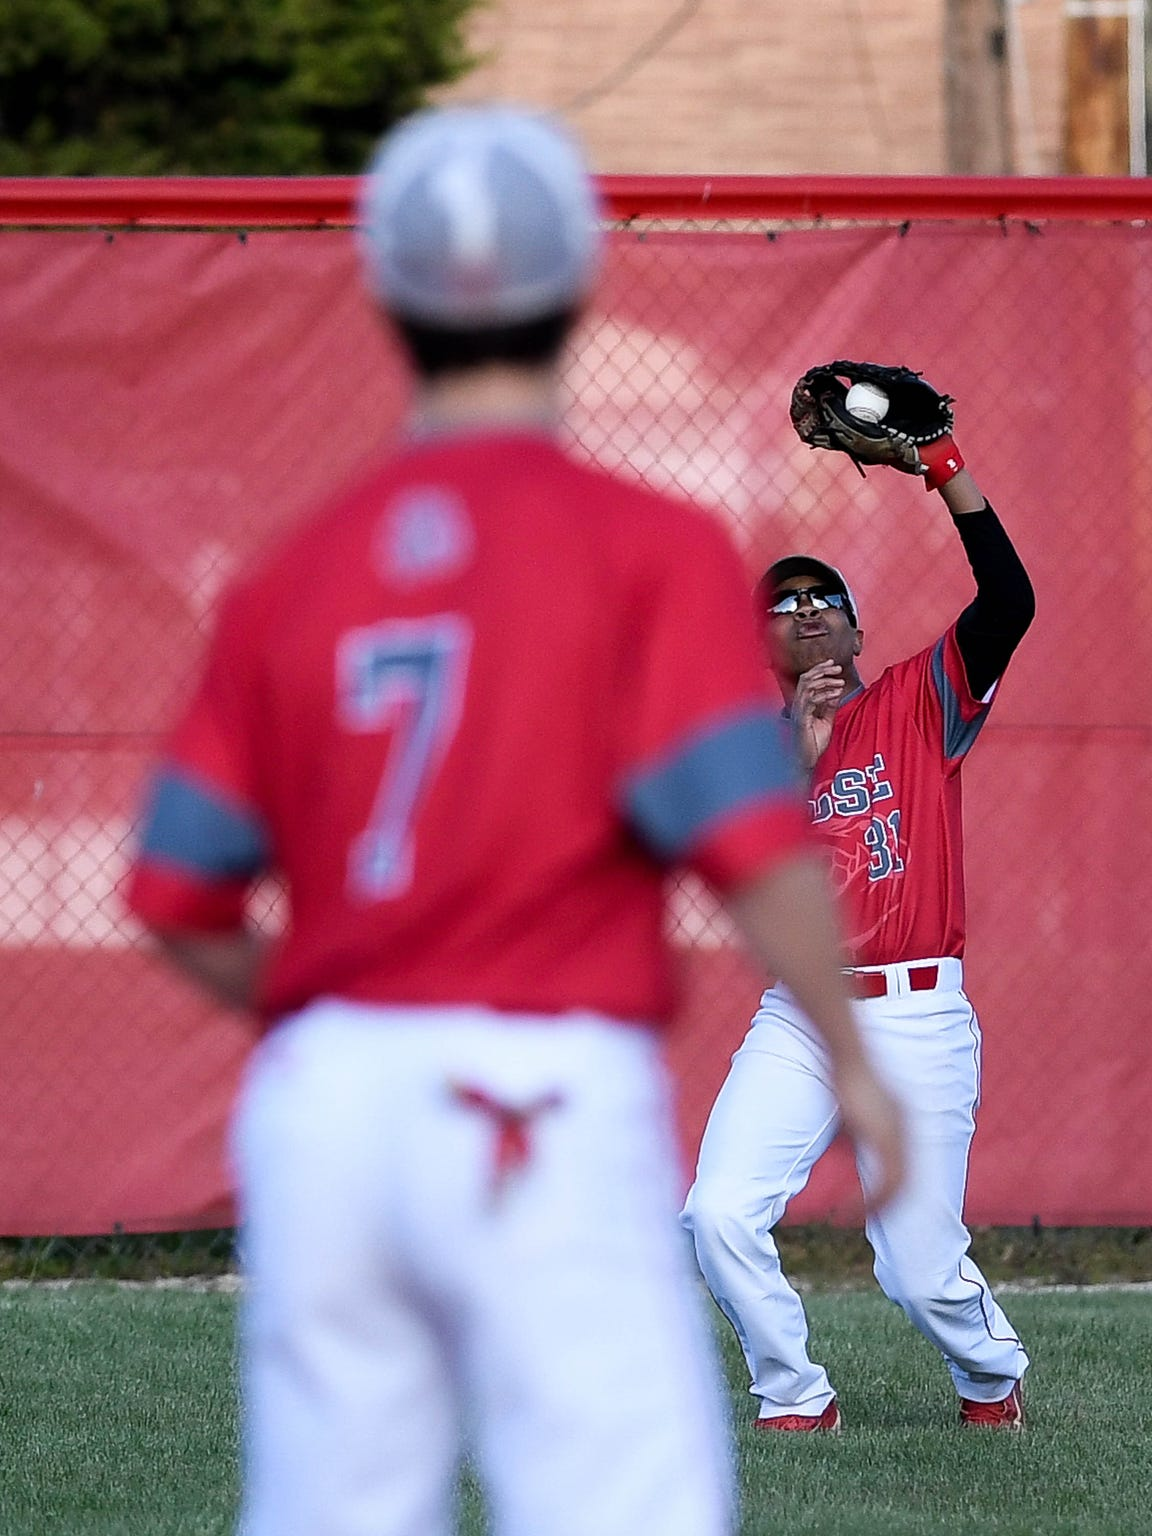 Bosse outfielder Michael Roach (31) makes a catch as teammate Reid Stevens (7) looks on as the Bulldogs faced Castle on Thursday night at Washington Avenue Field.